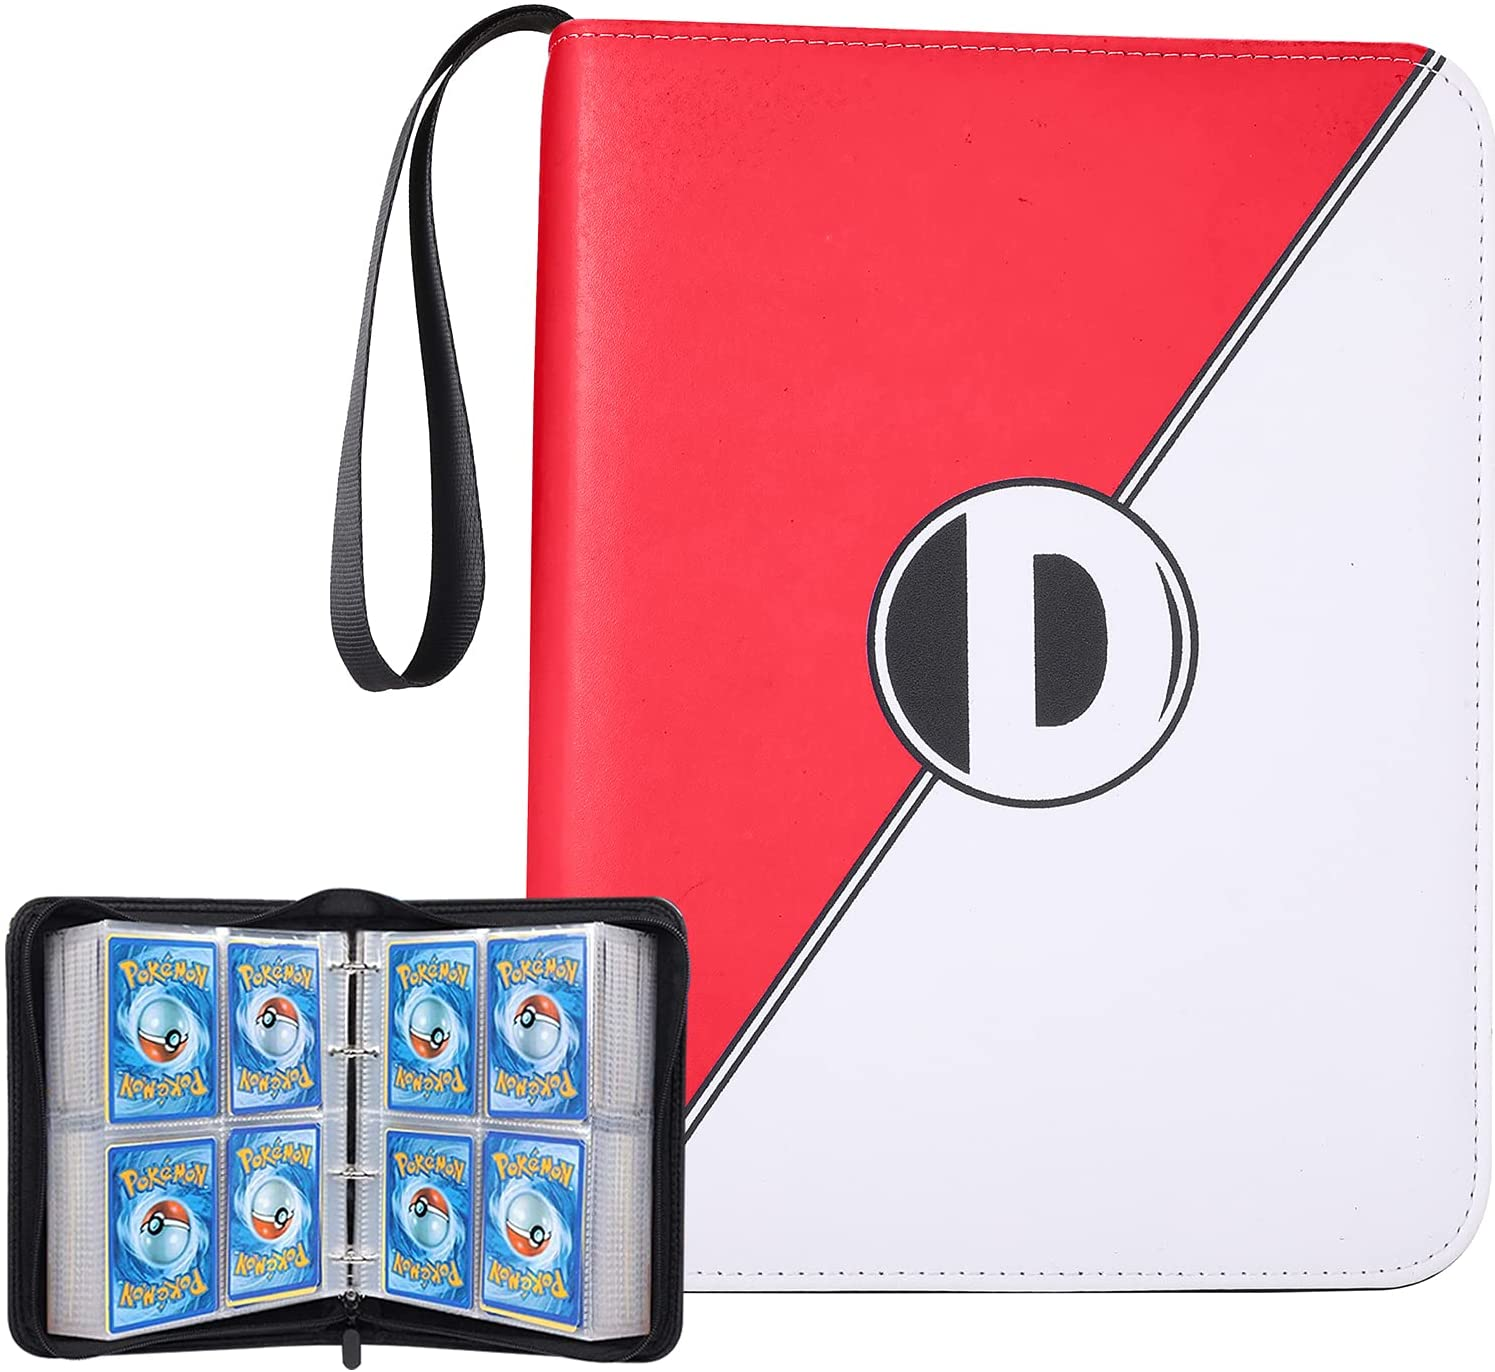 Binder for Pokémon cards with sleeves